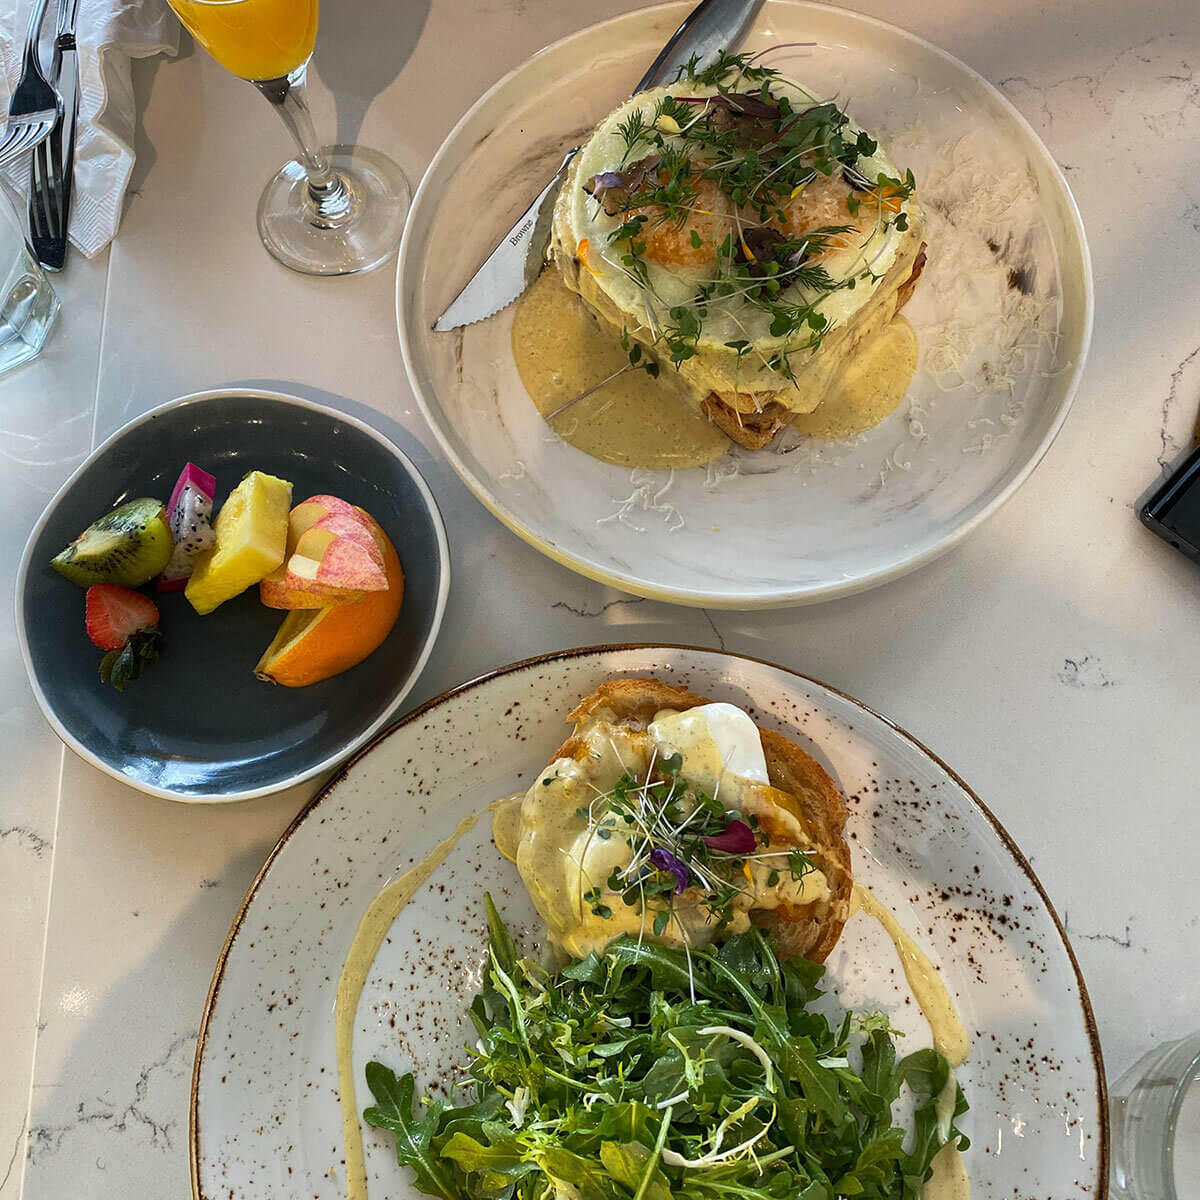 The Saskatoon January City Cuide recommends the Squash and Truffle Eggs Benedict plus fresh fruit at OEB